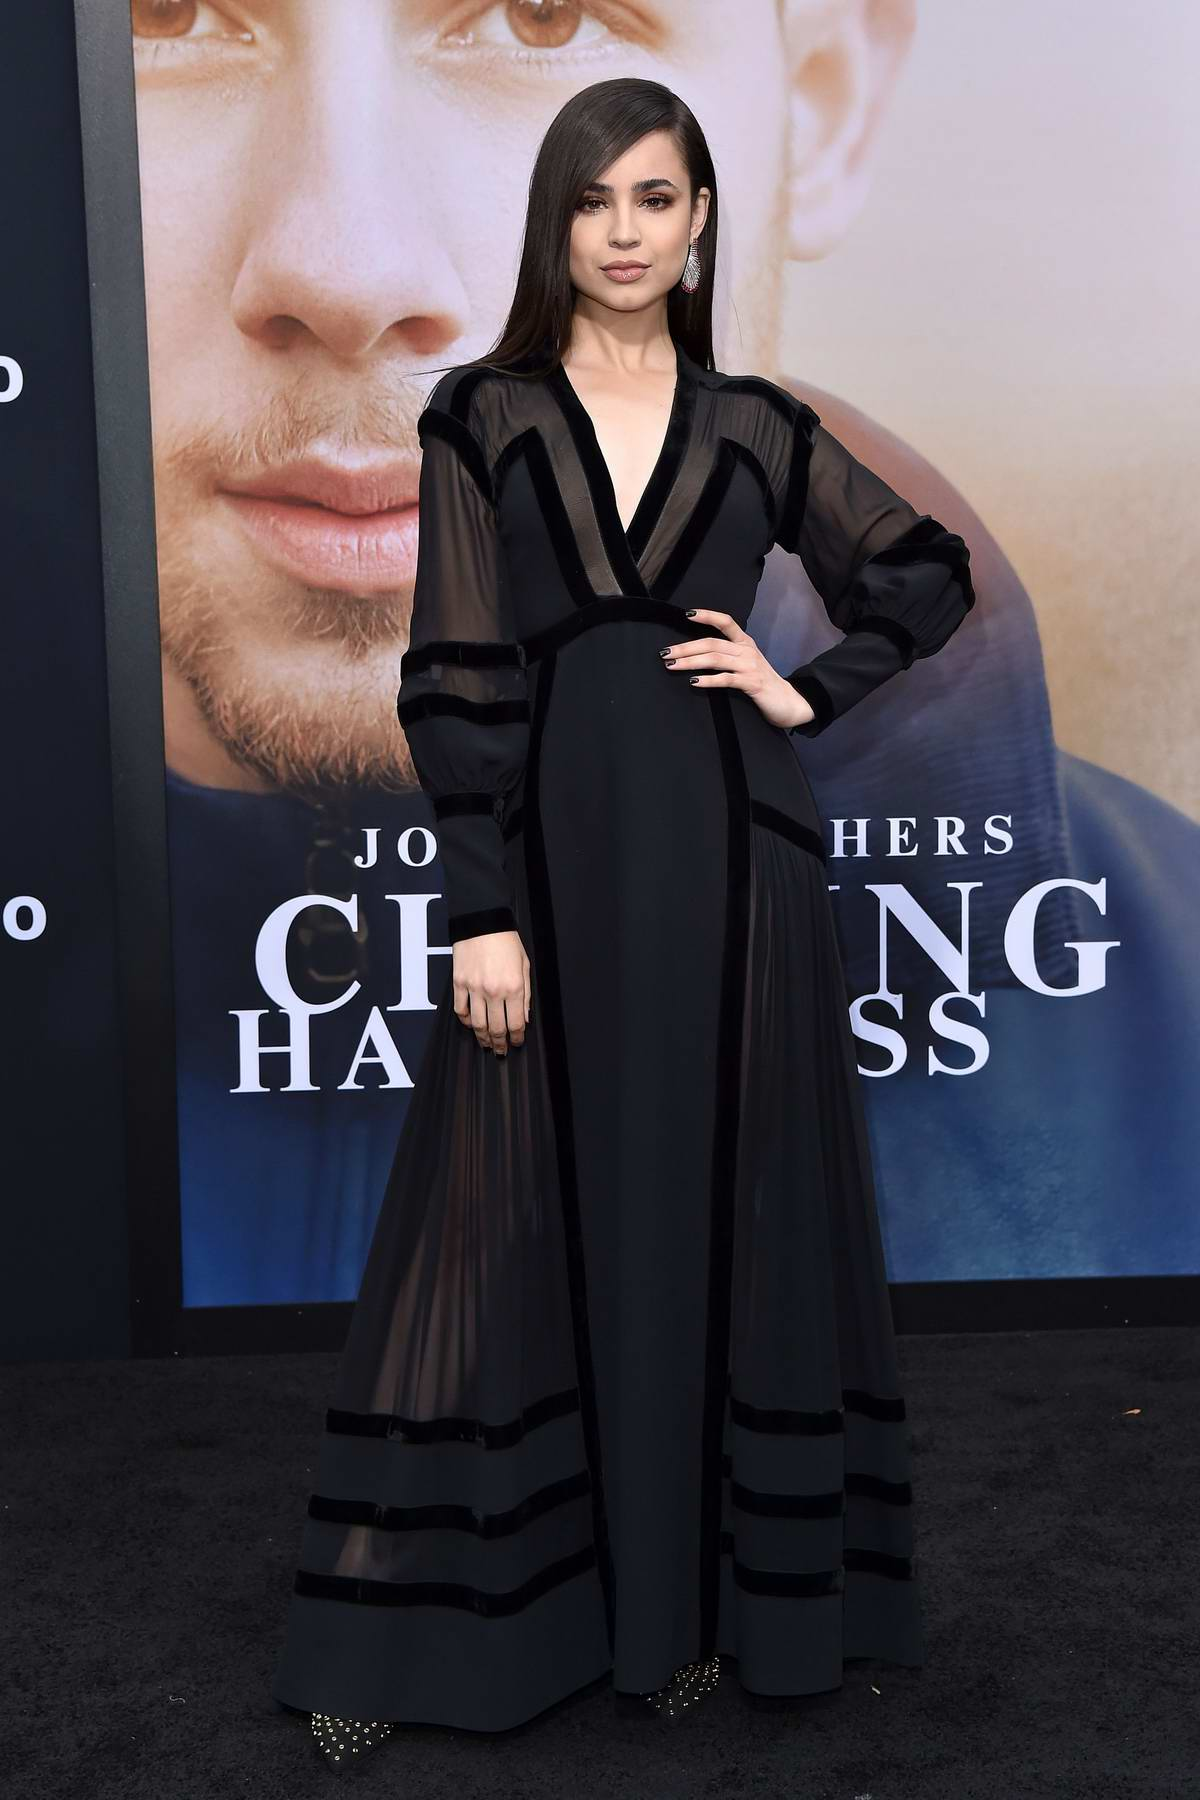 Sofia Carson attends 'Chasing Happiness' film premiere at Regency Bruin Theatre in Los Angeles